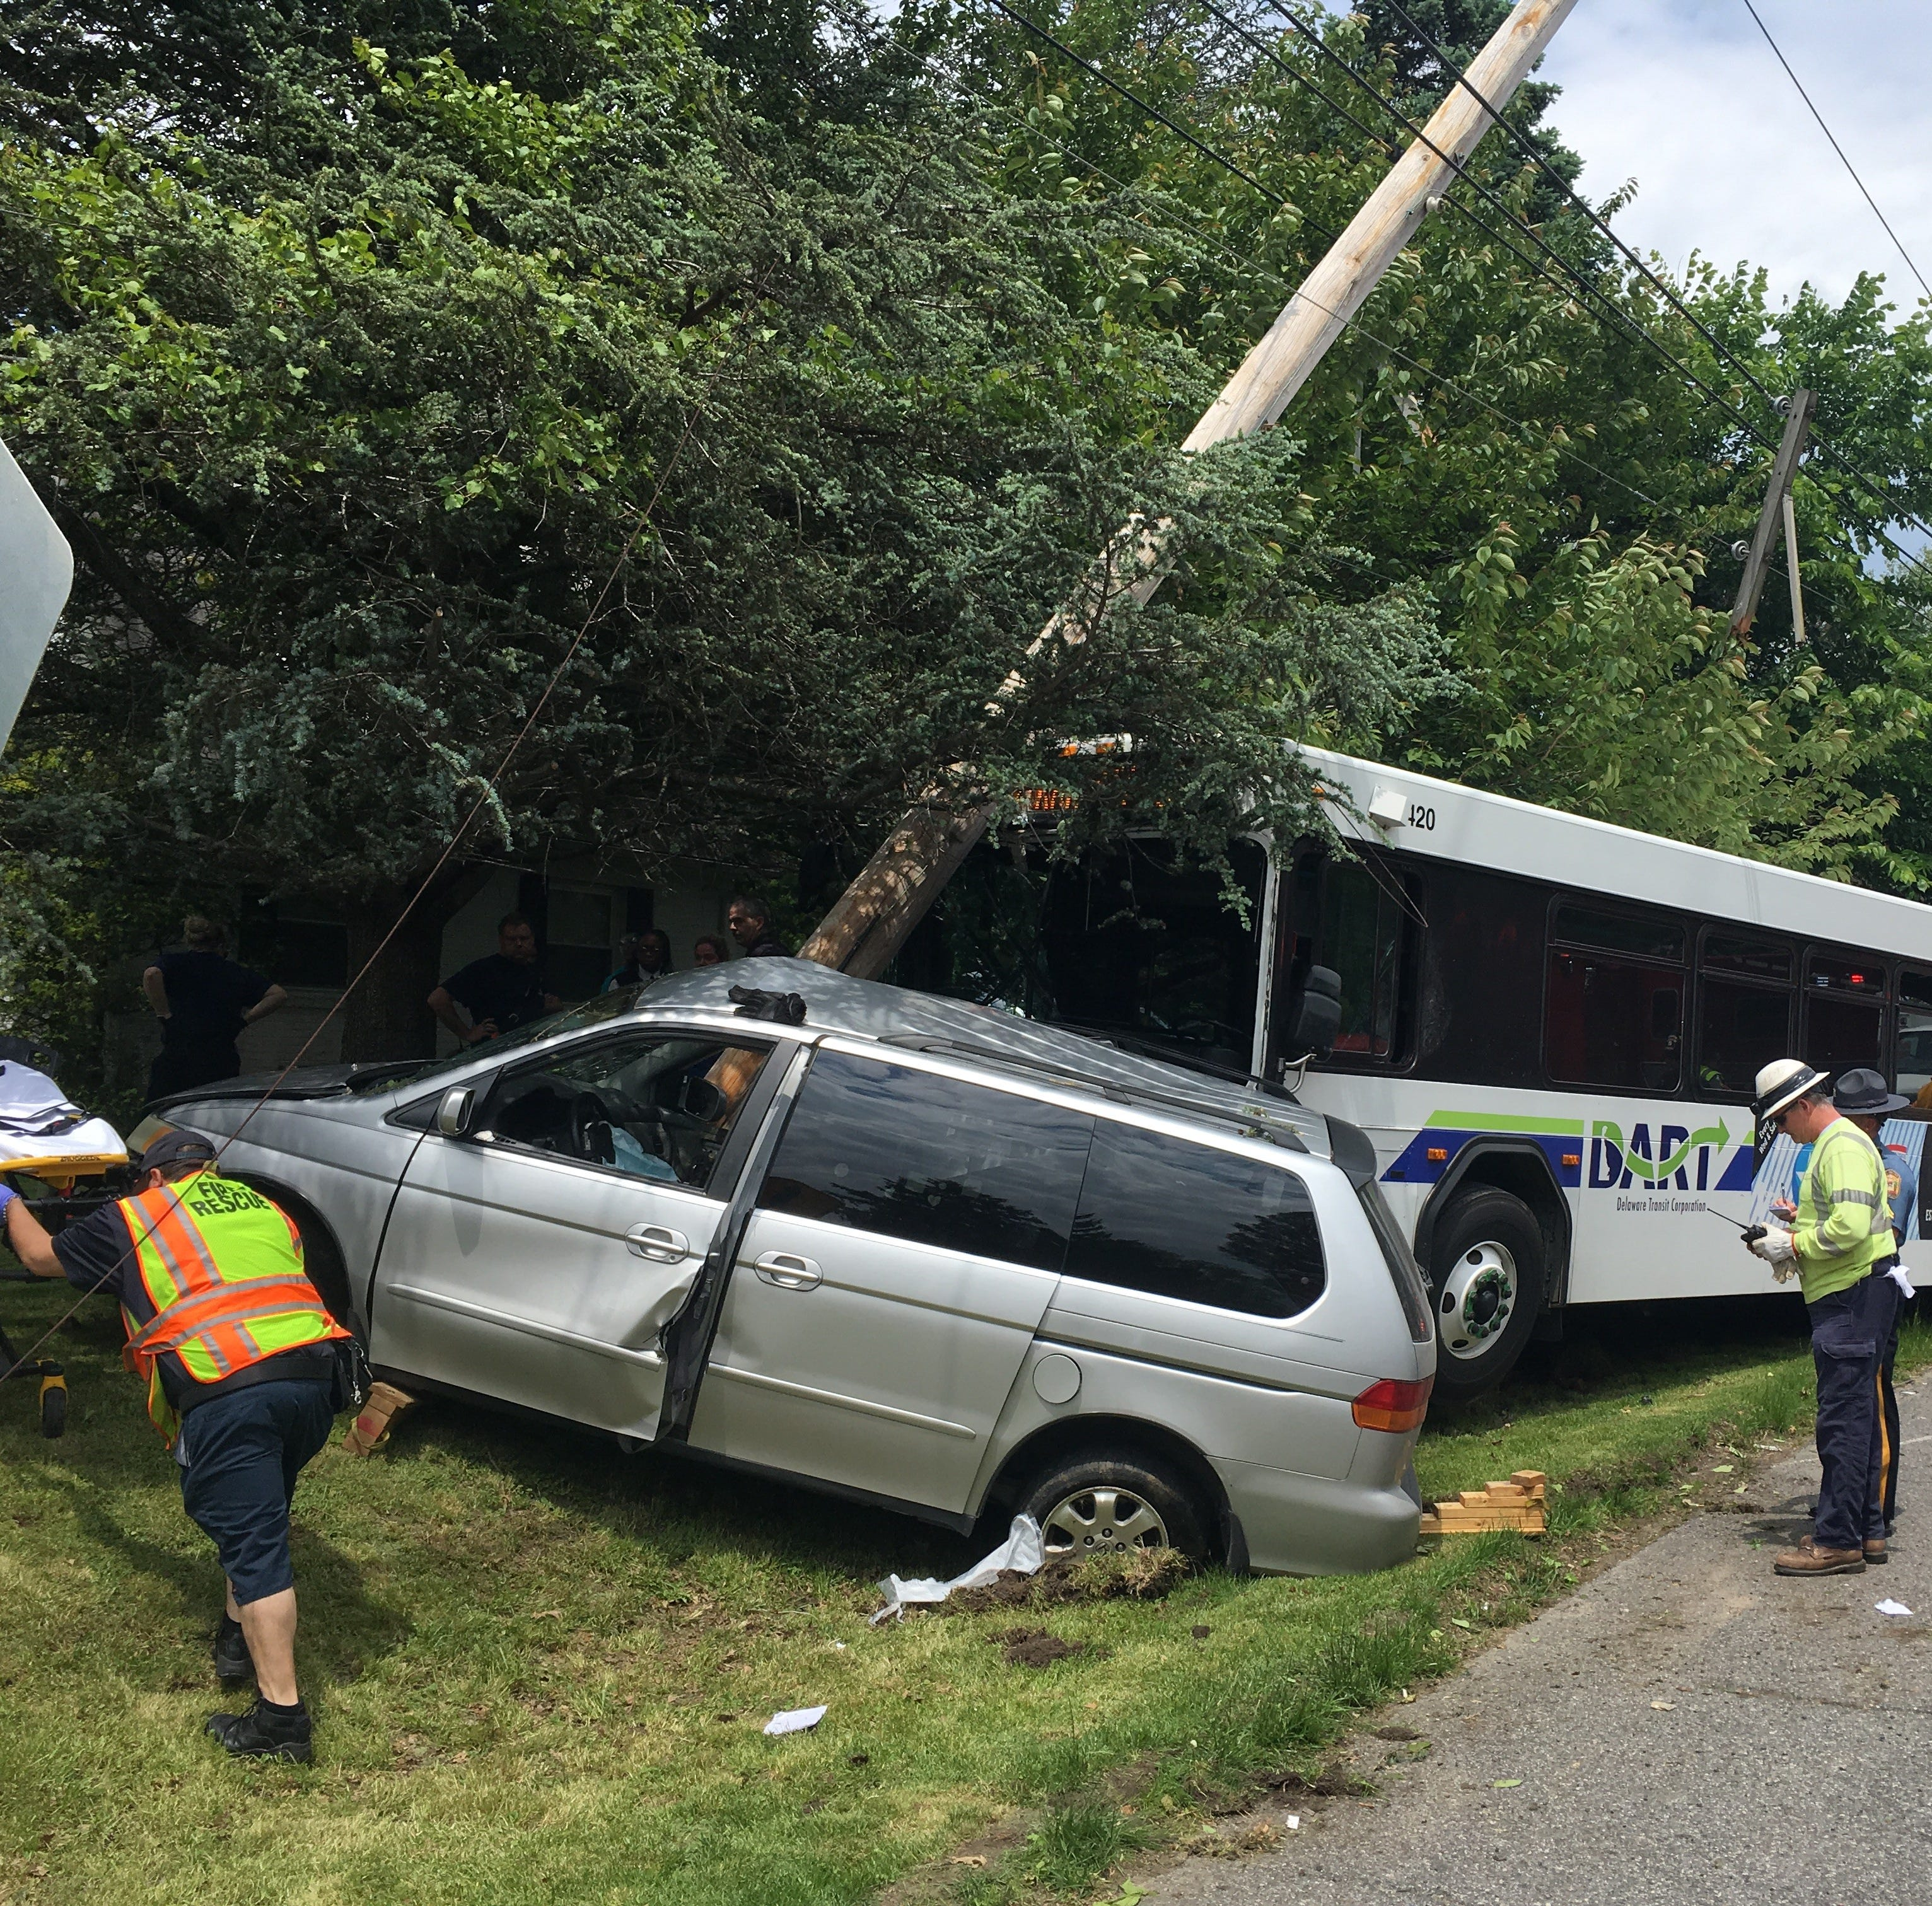 DART bus crash shuts portion of Marsh Road in Brandywine Hundred